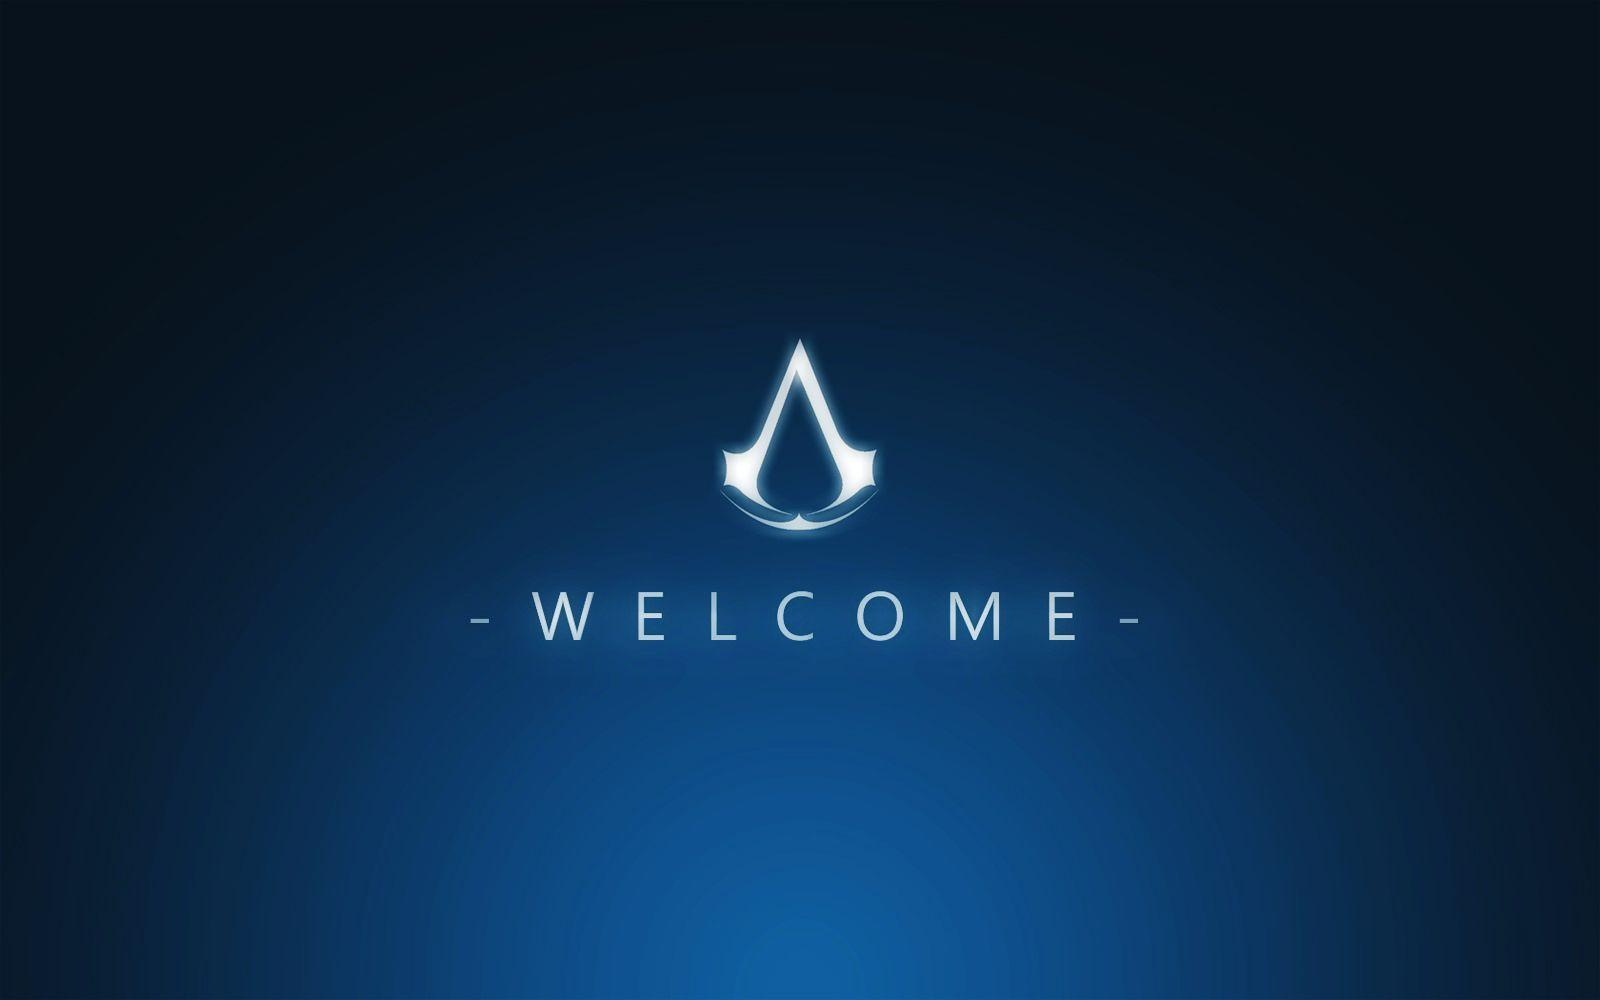 Assassin&Creed Logo HD Wallpapers Download Free Wallpapers in HD